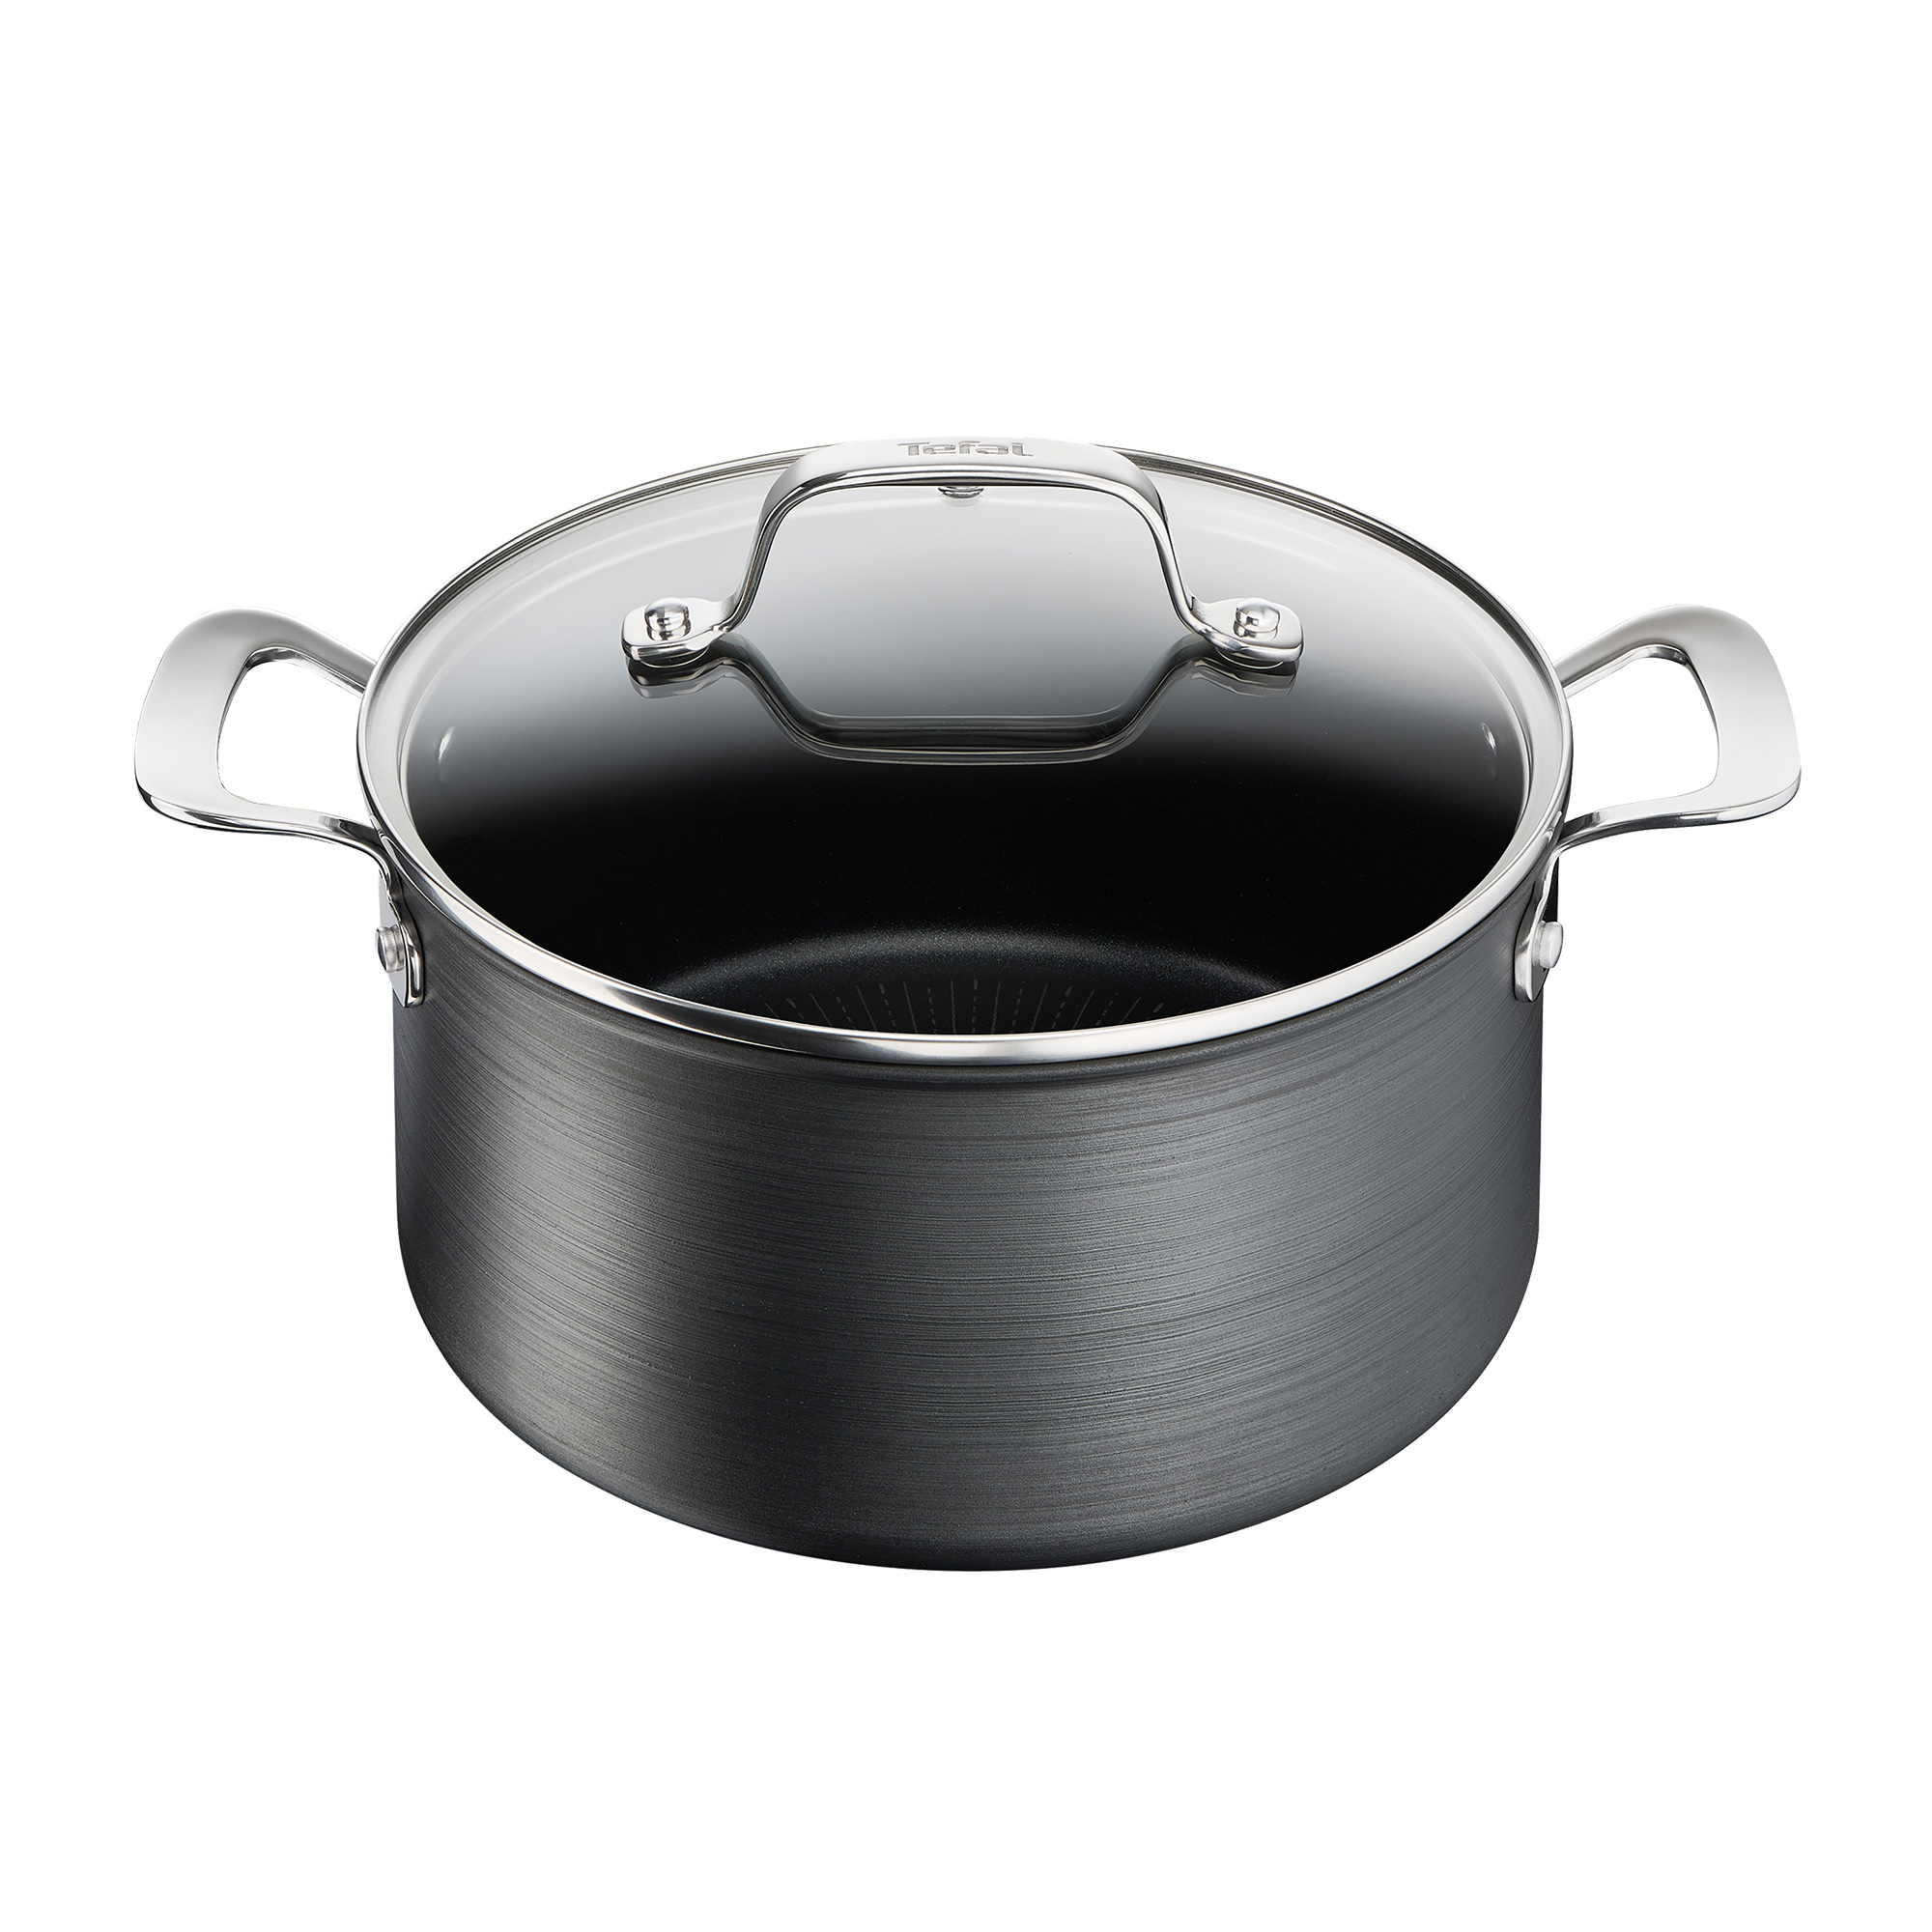 Tefal Unlimited Premium Induction Stewpot w/ Lid 24cm - 5L